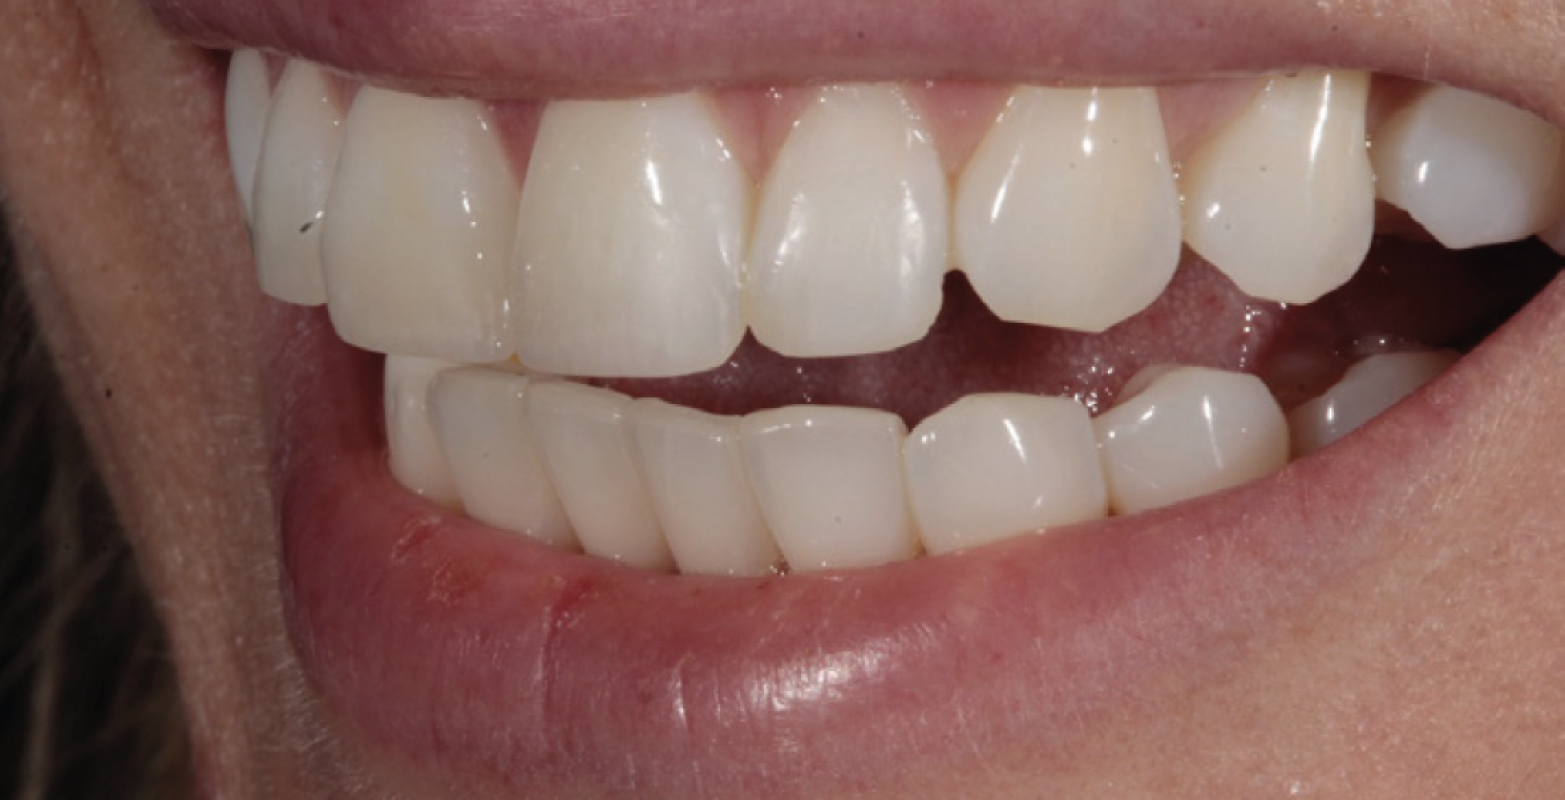 Tif Qureshi - Ortho restorative - case 1.4